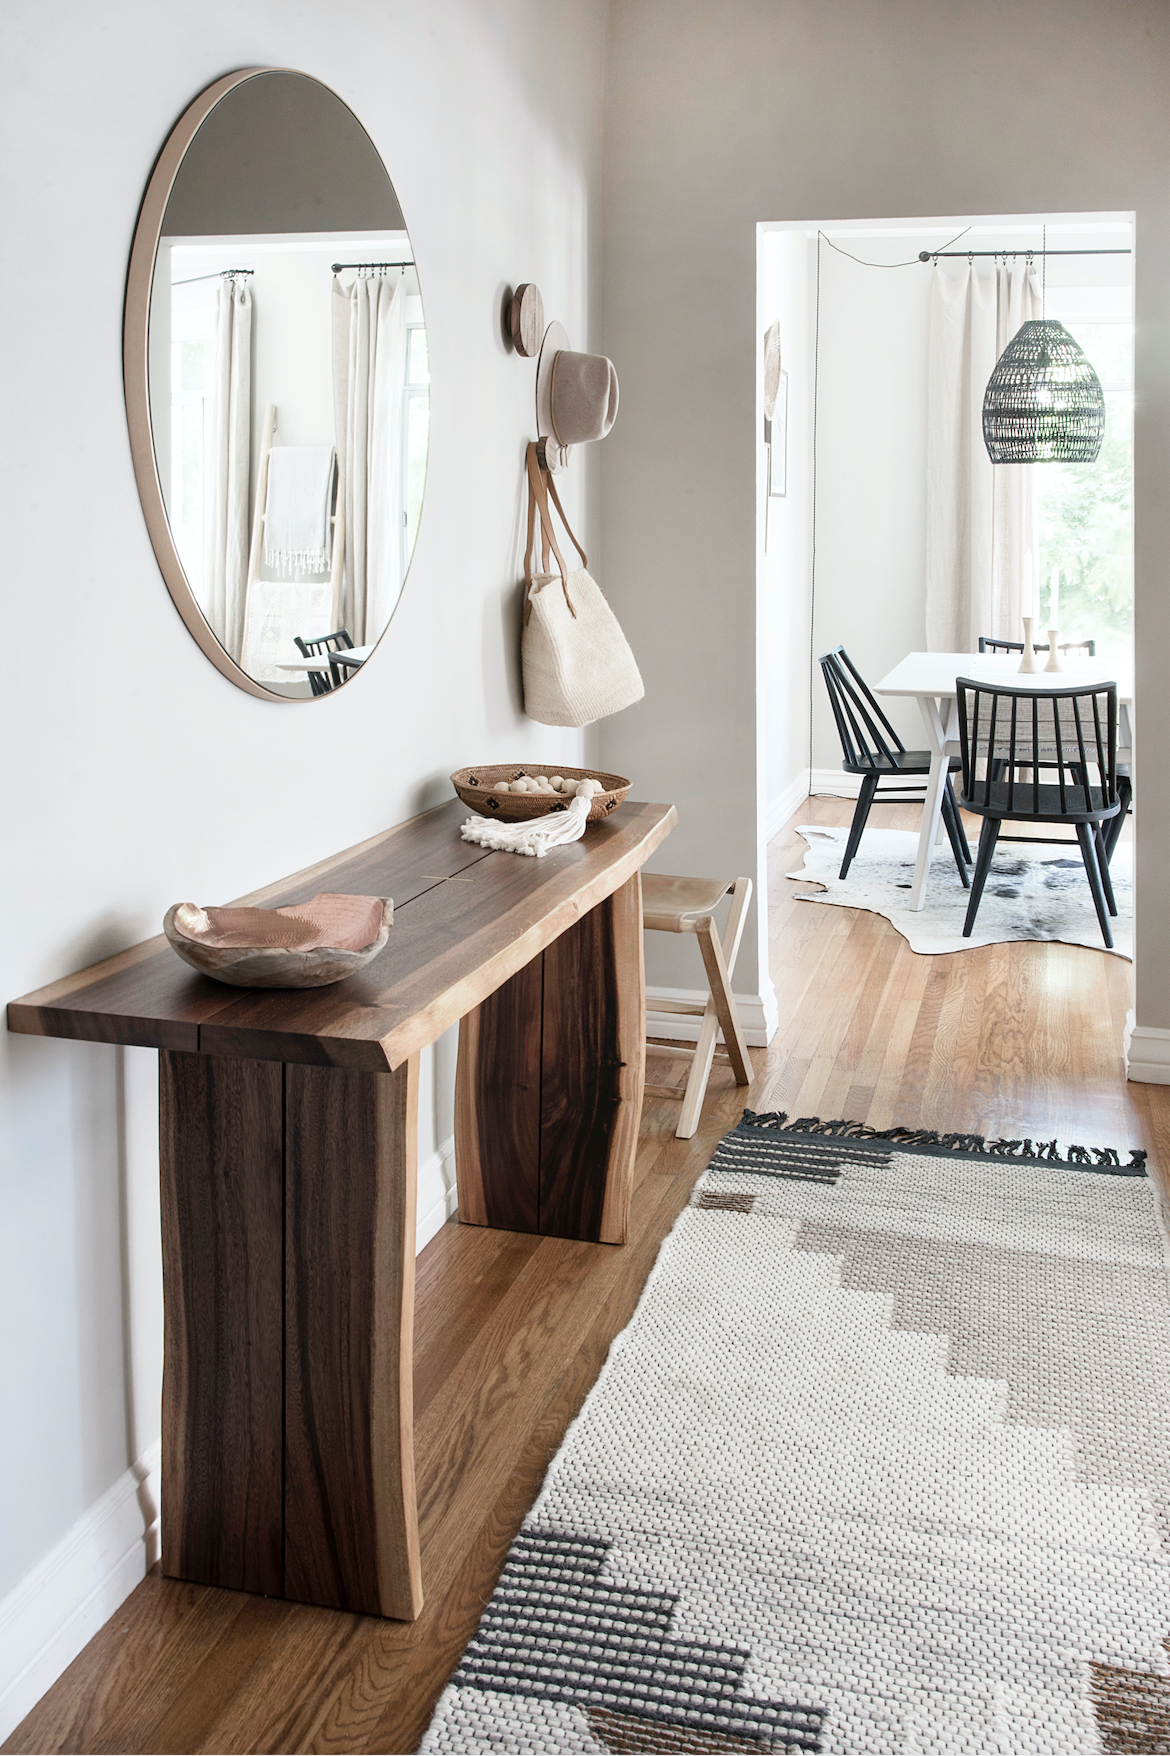 Marina Flat Entry vertical shot with bali beads, sisal hand bag, leather folding stool, round wall mirror, copper and teak bowl, wall hooks, woven rug and view of the adjoining dining room space.